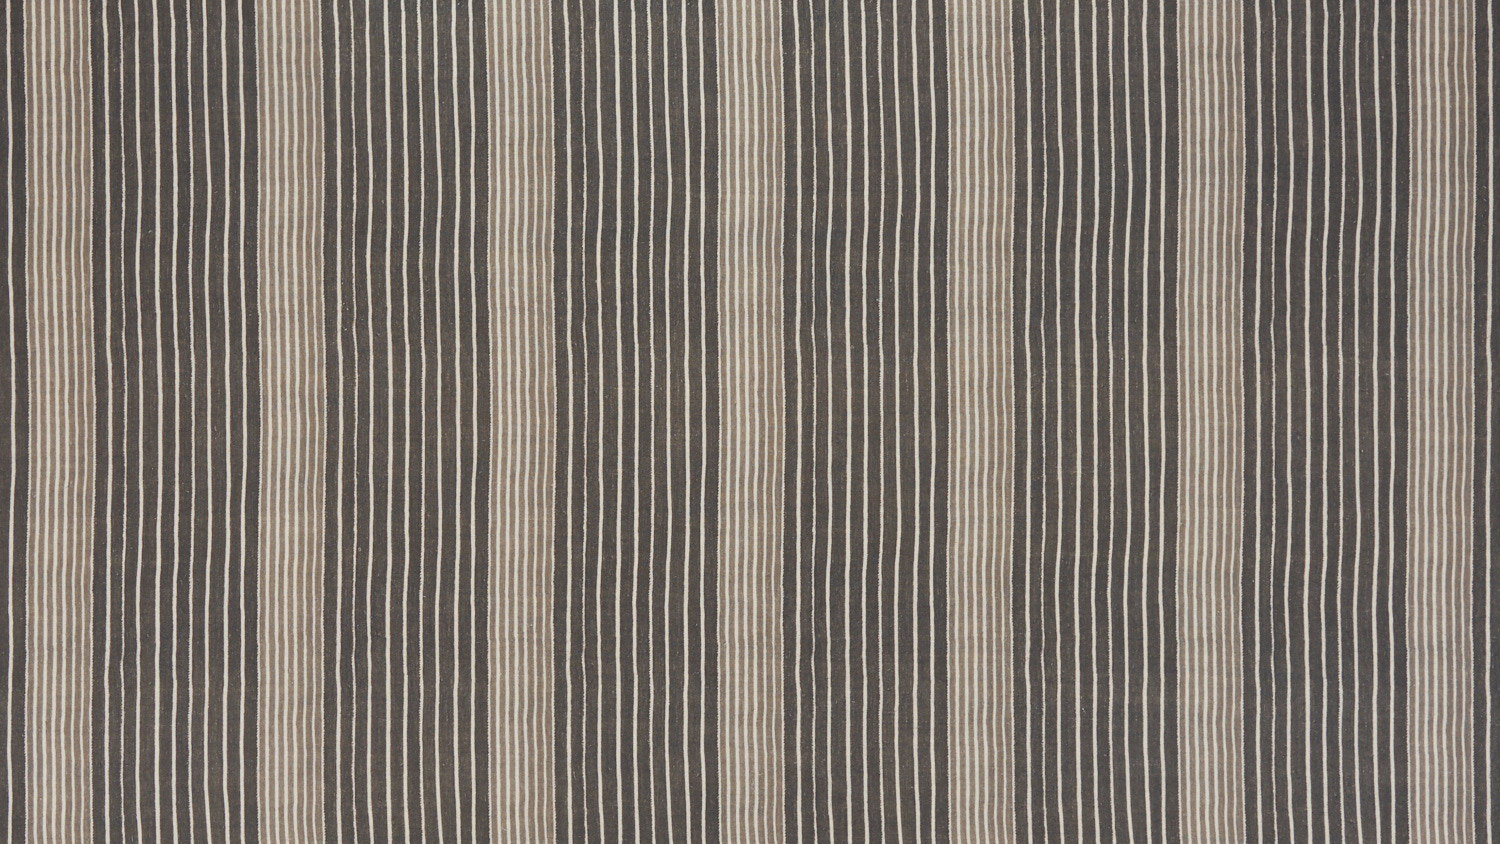 Clay_McLaurin_Studio_Mediterranean_Stripe_Earth_web2.jpg